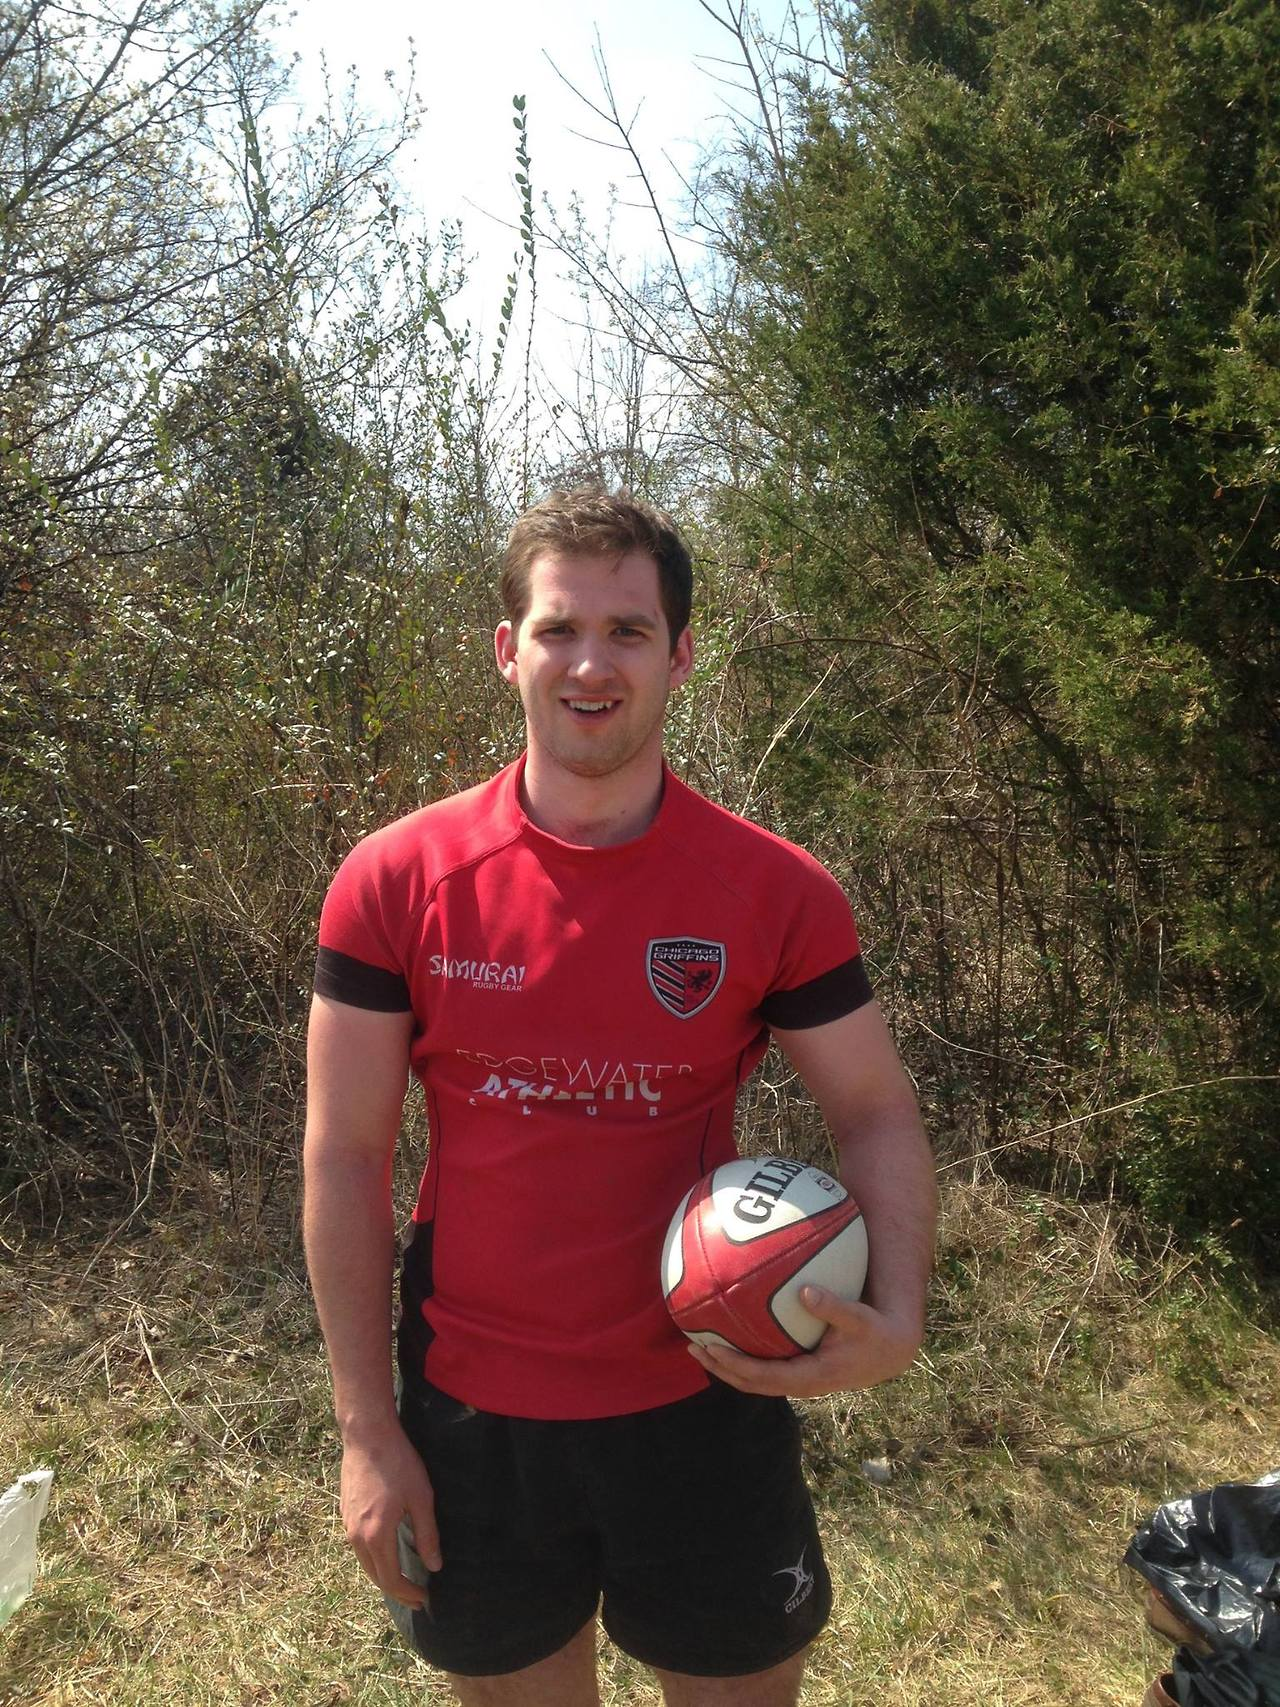 Sam, 2013 earns his first cap for the Chicago Griffins RFC Men's Div 1 side!   Congrats Sam! Go BLUE!